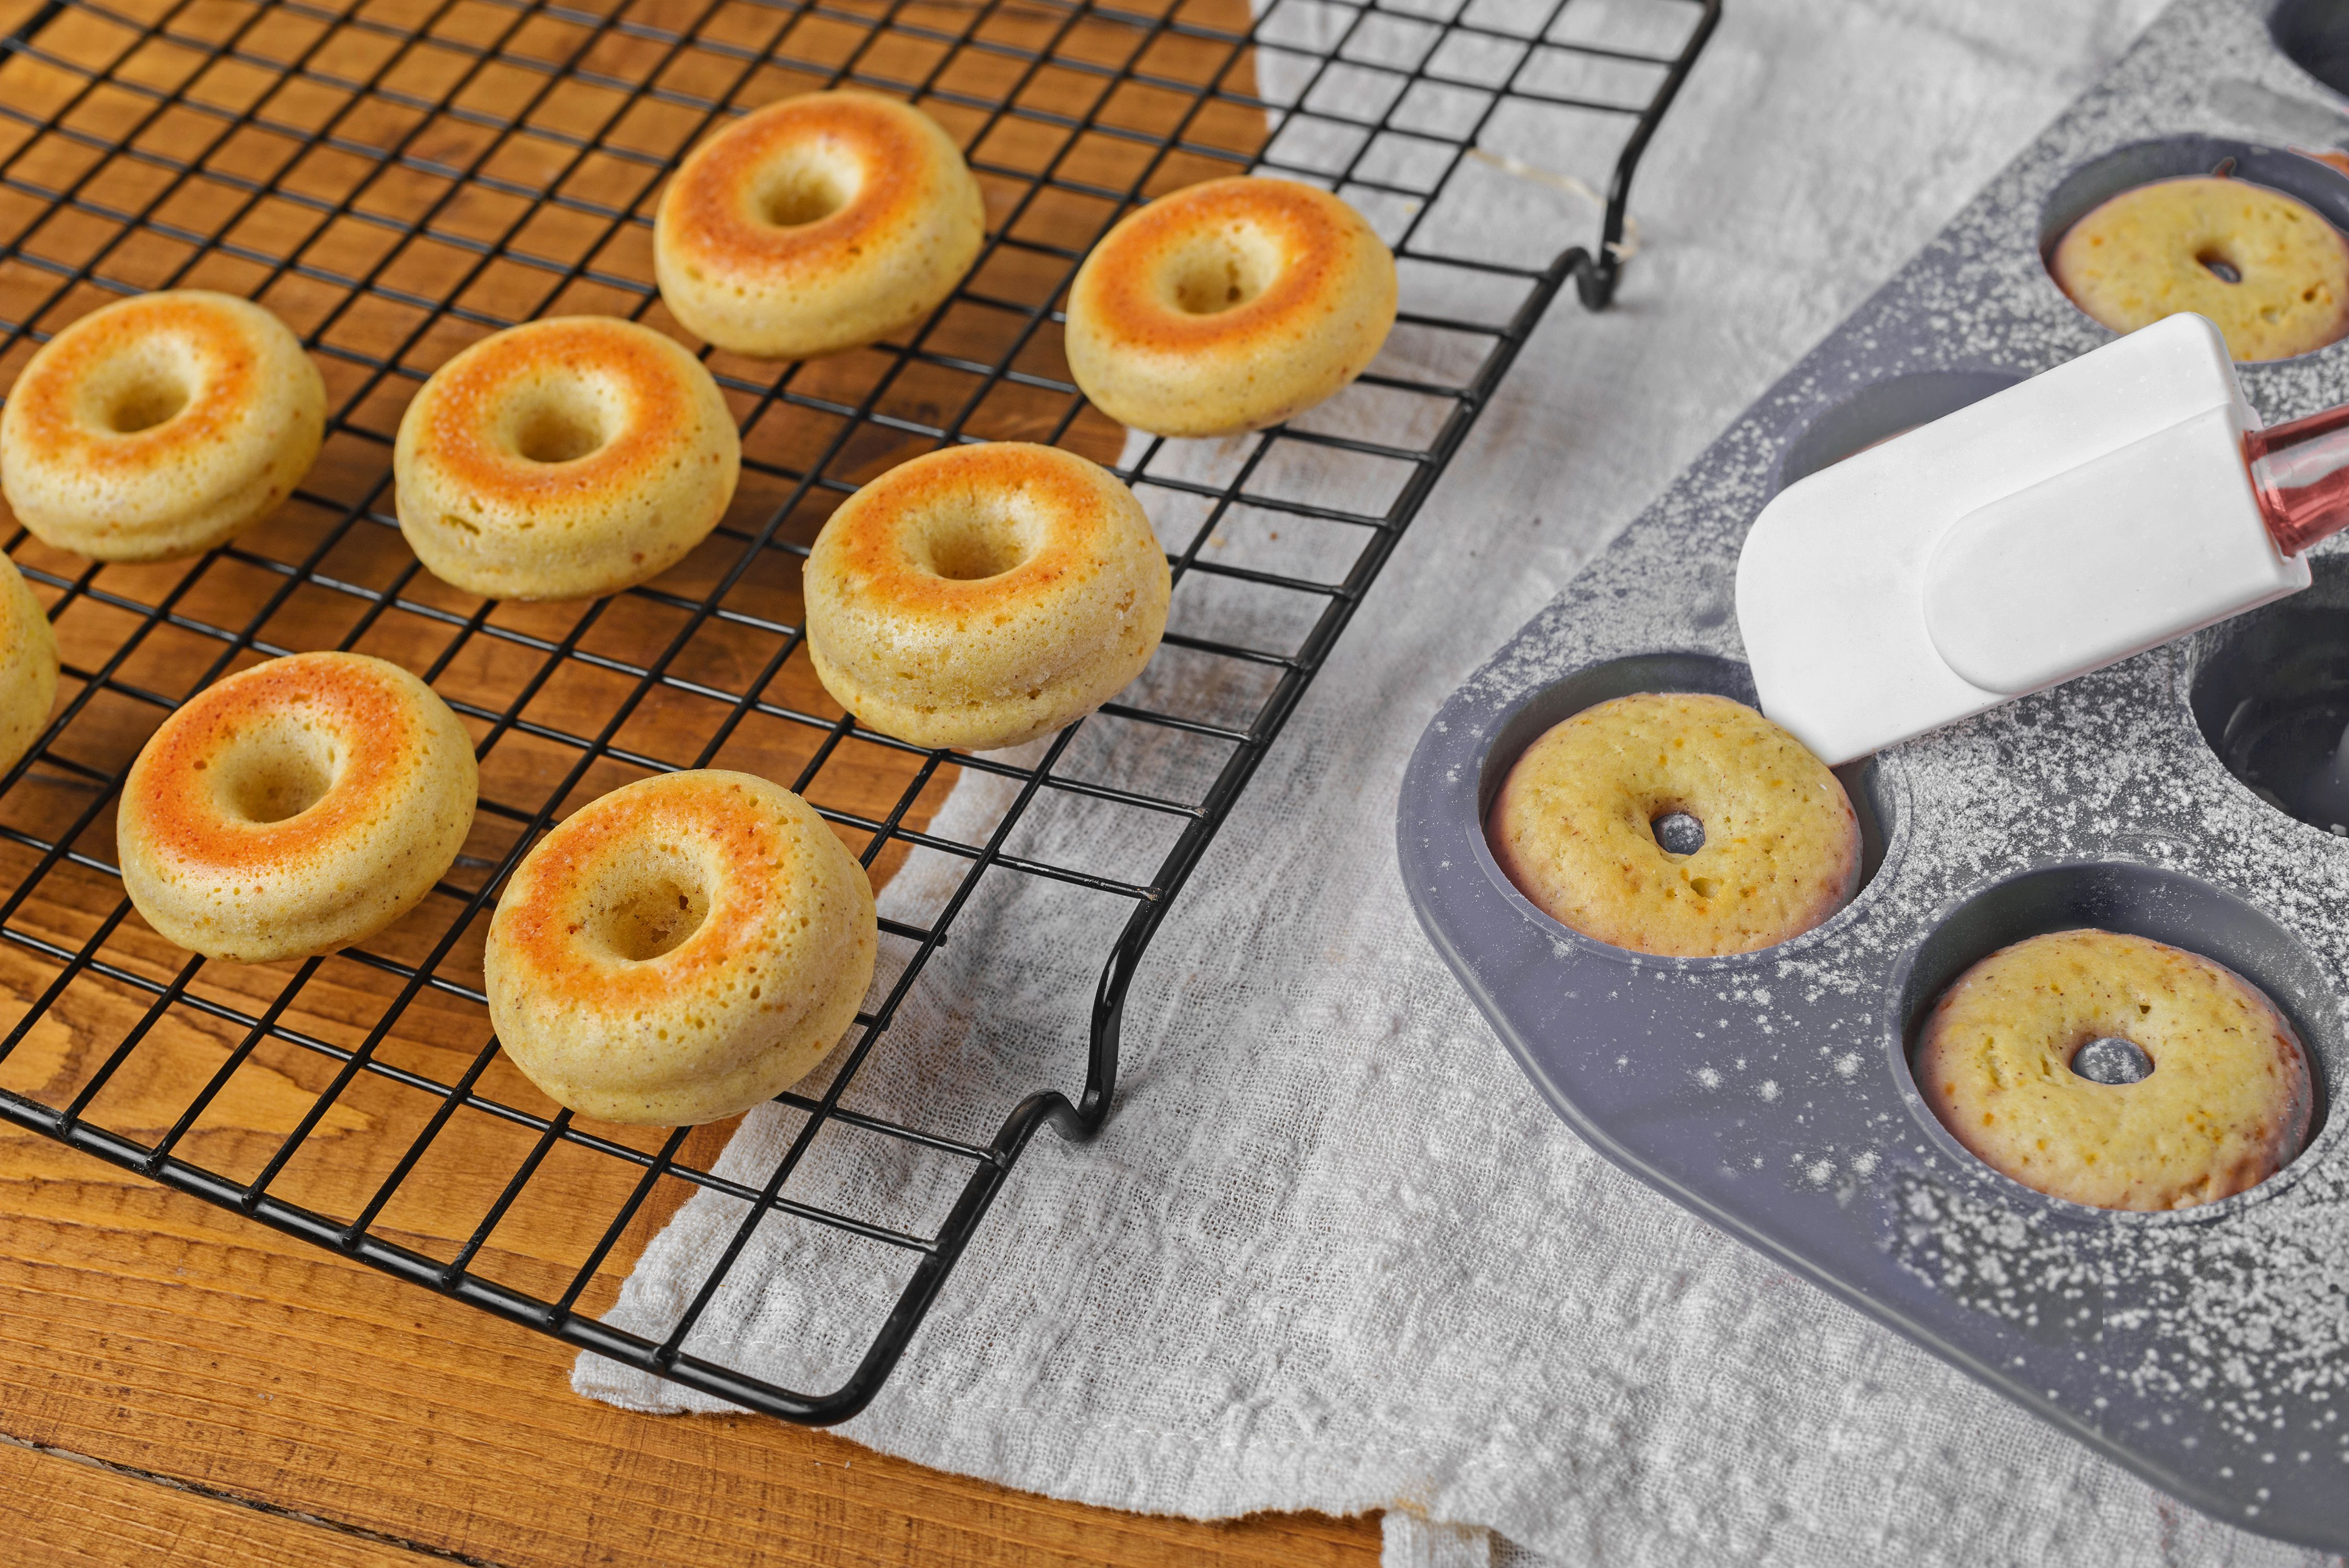 Allow donuts to cool in pan